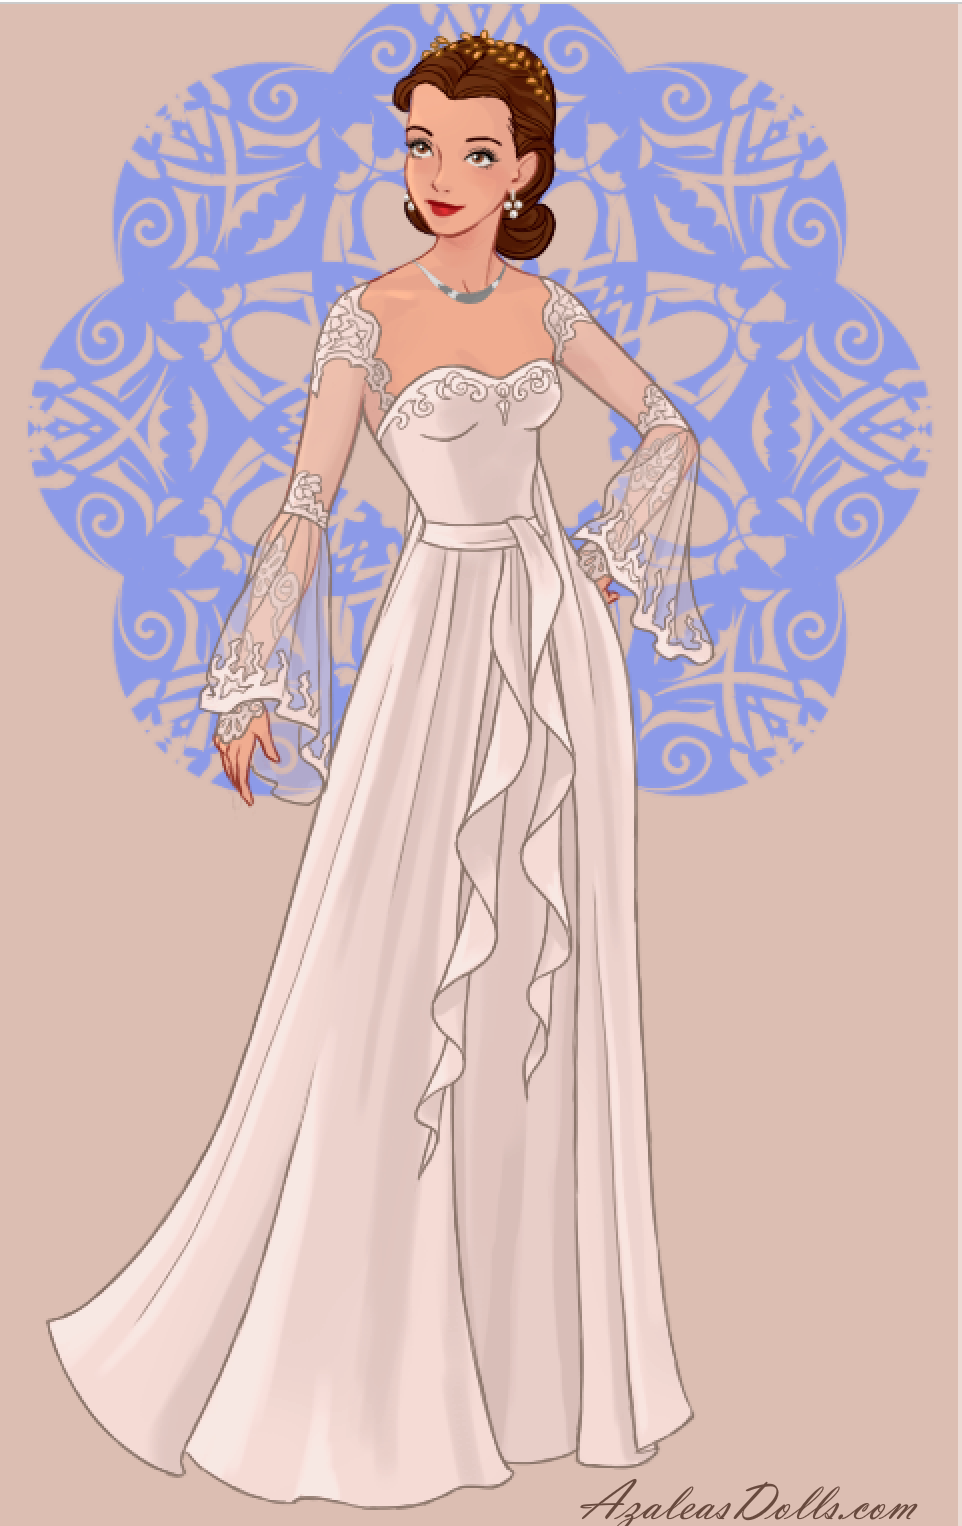 Princess Leia Daughter Of Anakin Skywalker And Padme And Twin Sister Of Luke From Star Wars Fra Disney Wedding Dresses Star Wars Wedding Dress Star Wars Dress